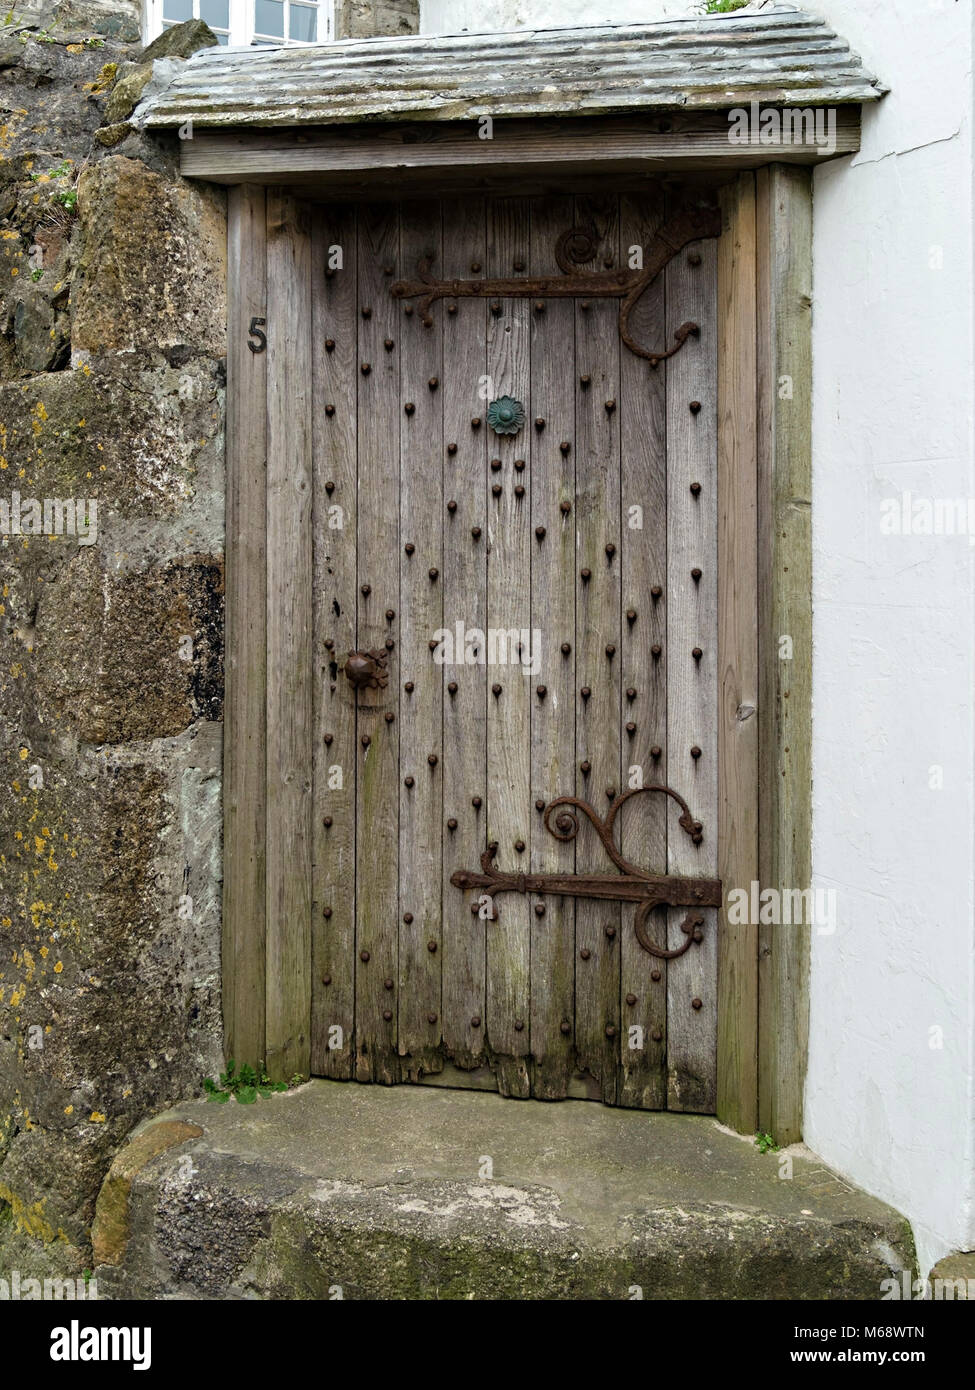 Old Oak Front Door With Iron Fittings In Granite Stone Wall Of What Is  Reputedly The